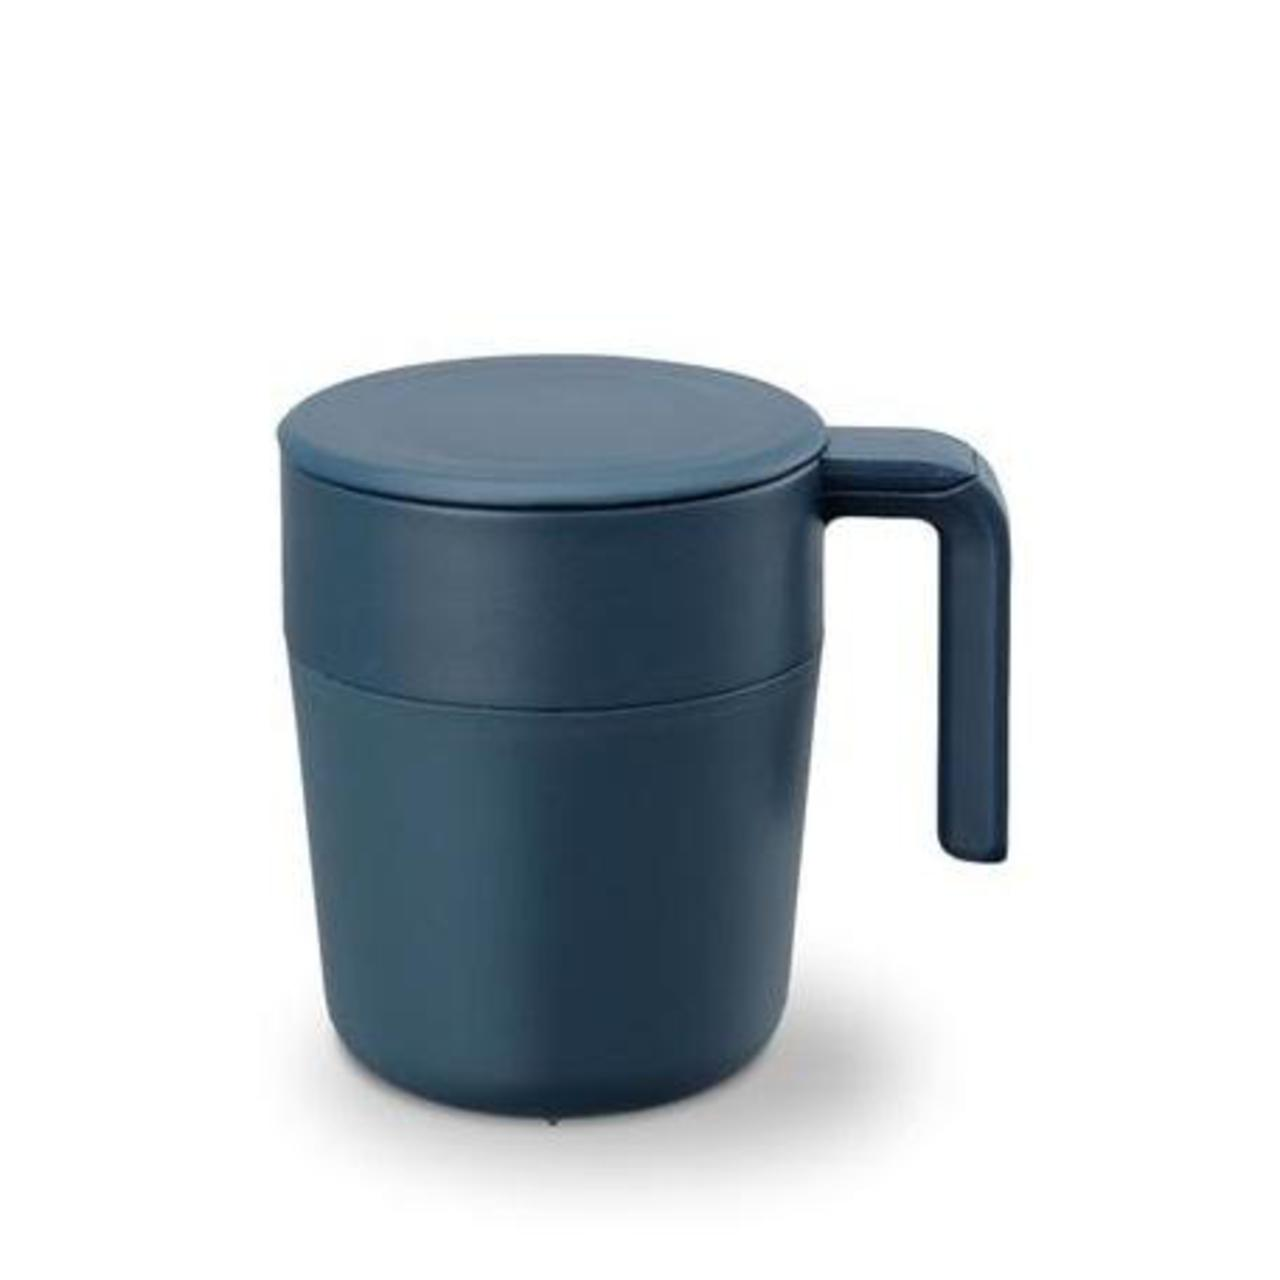 Kinto Cafepress Blauw - 260 ml